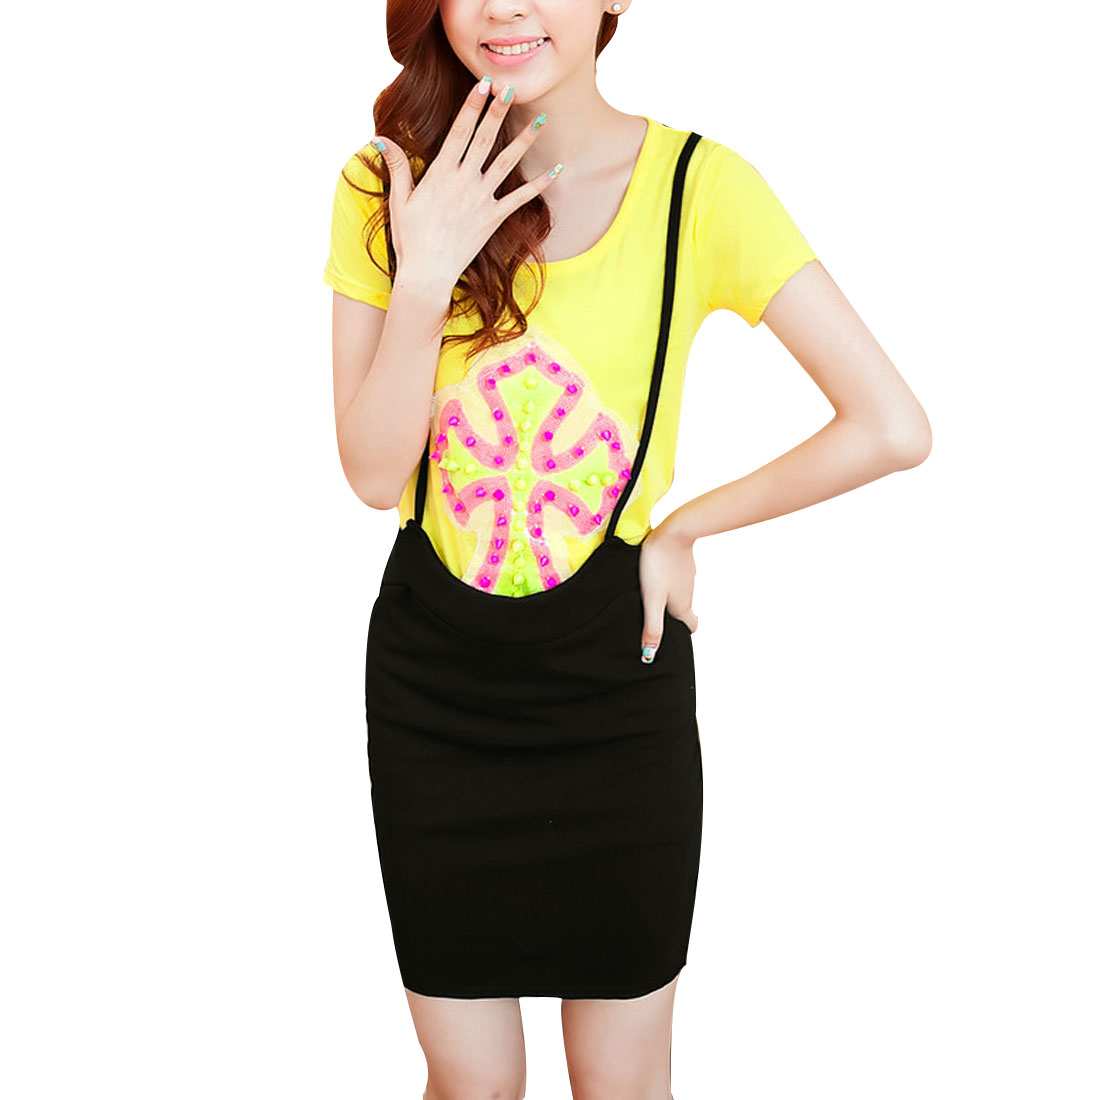 Women Rivets Decor Cross Prints Yellow Shirt w Black Suspender Skirt XS